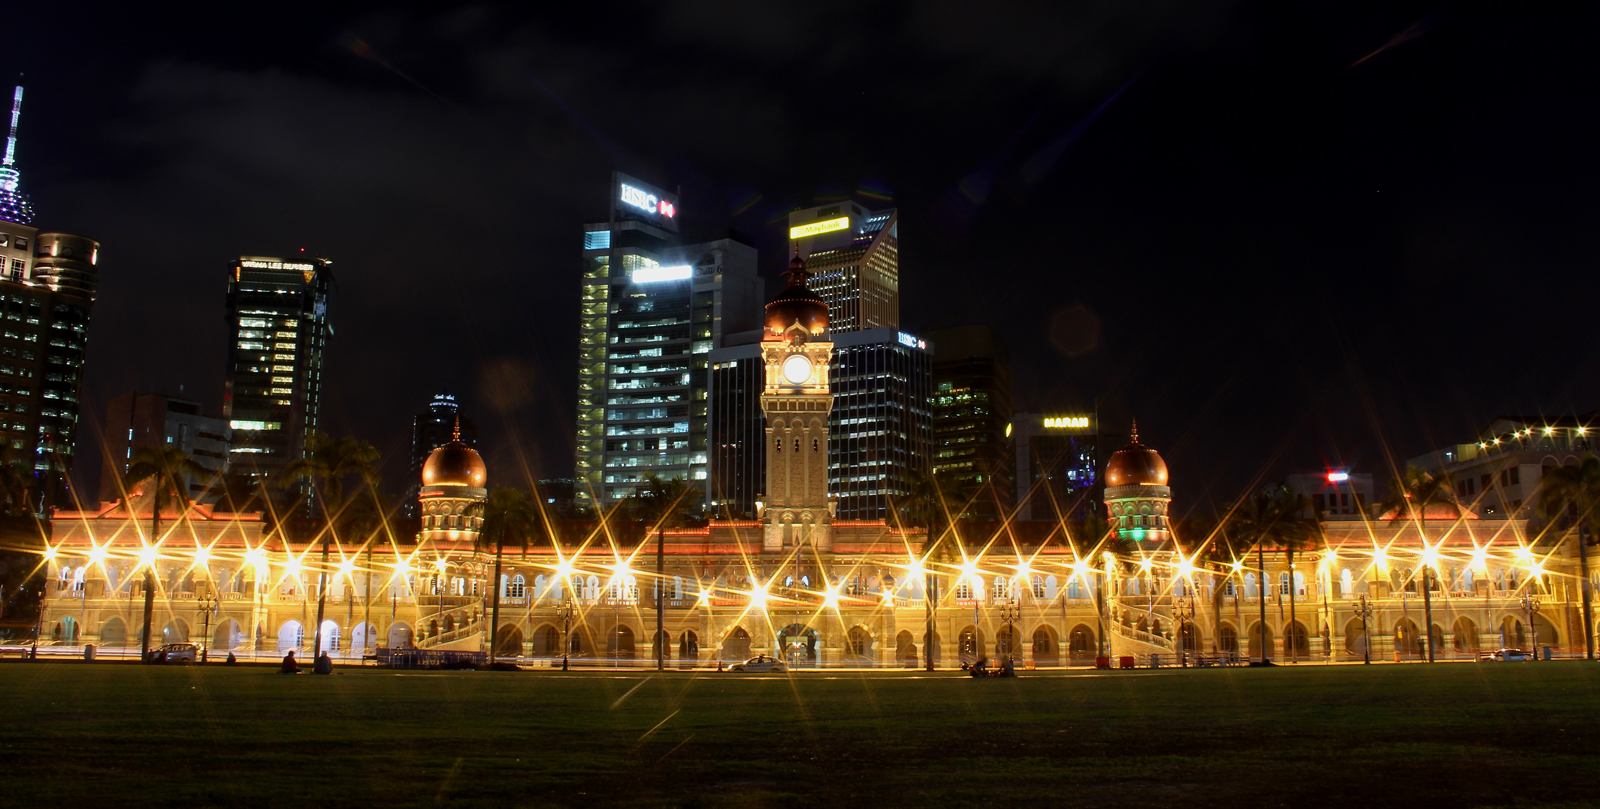 Merdeka Square: The Colonial Heart of Kuala Lumpur featured image